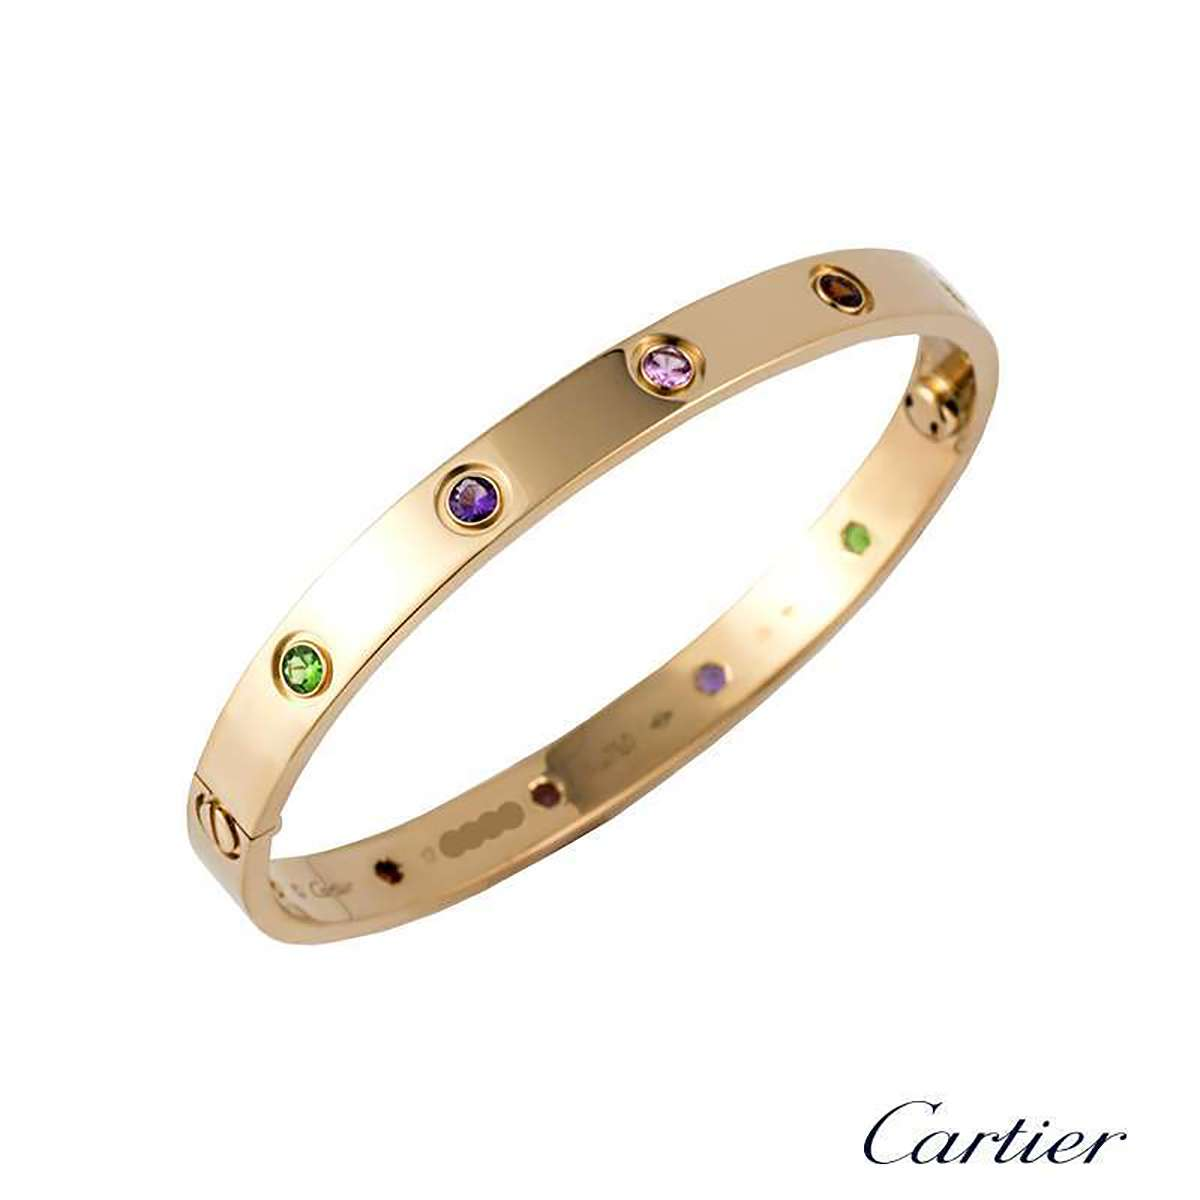 Cartier Rose Gold Coloured Stones Love Bracelet Size 16 B6036516